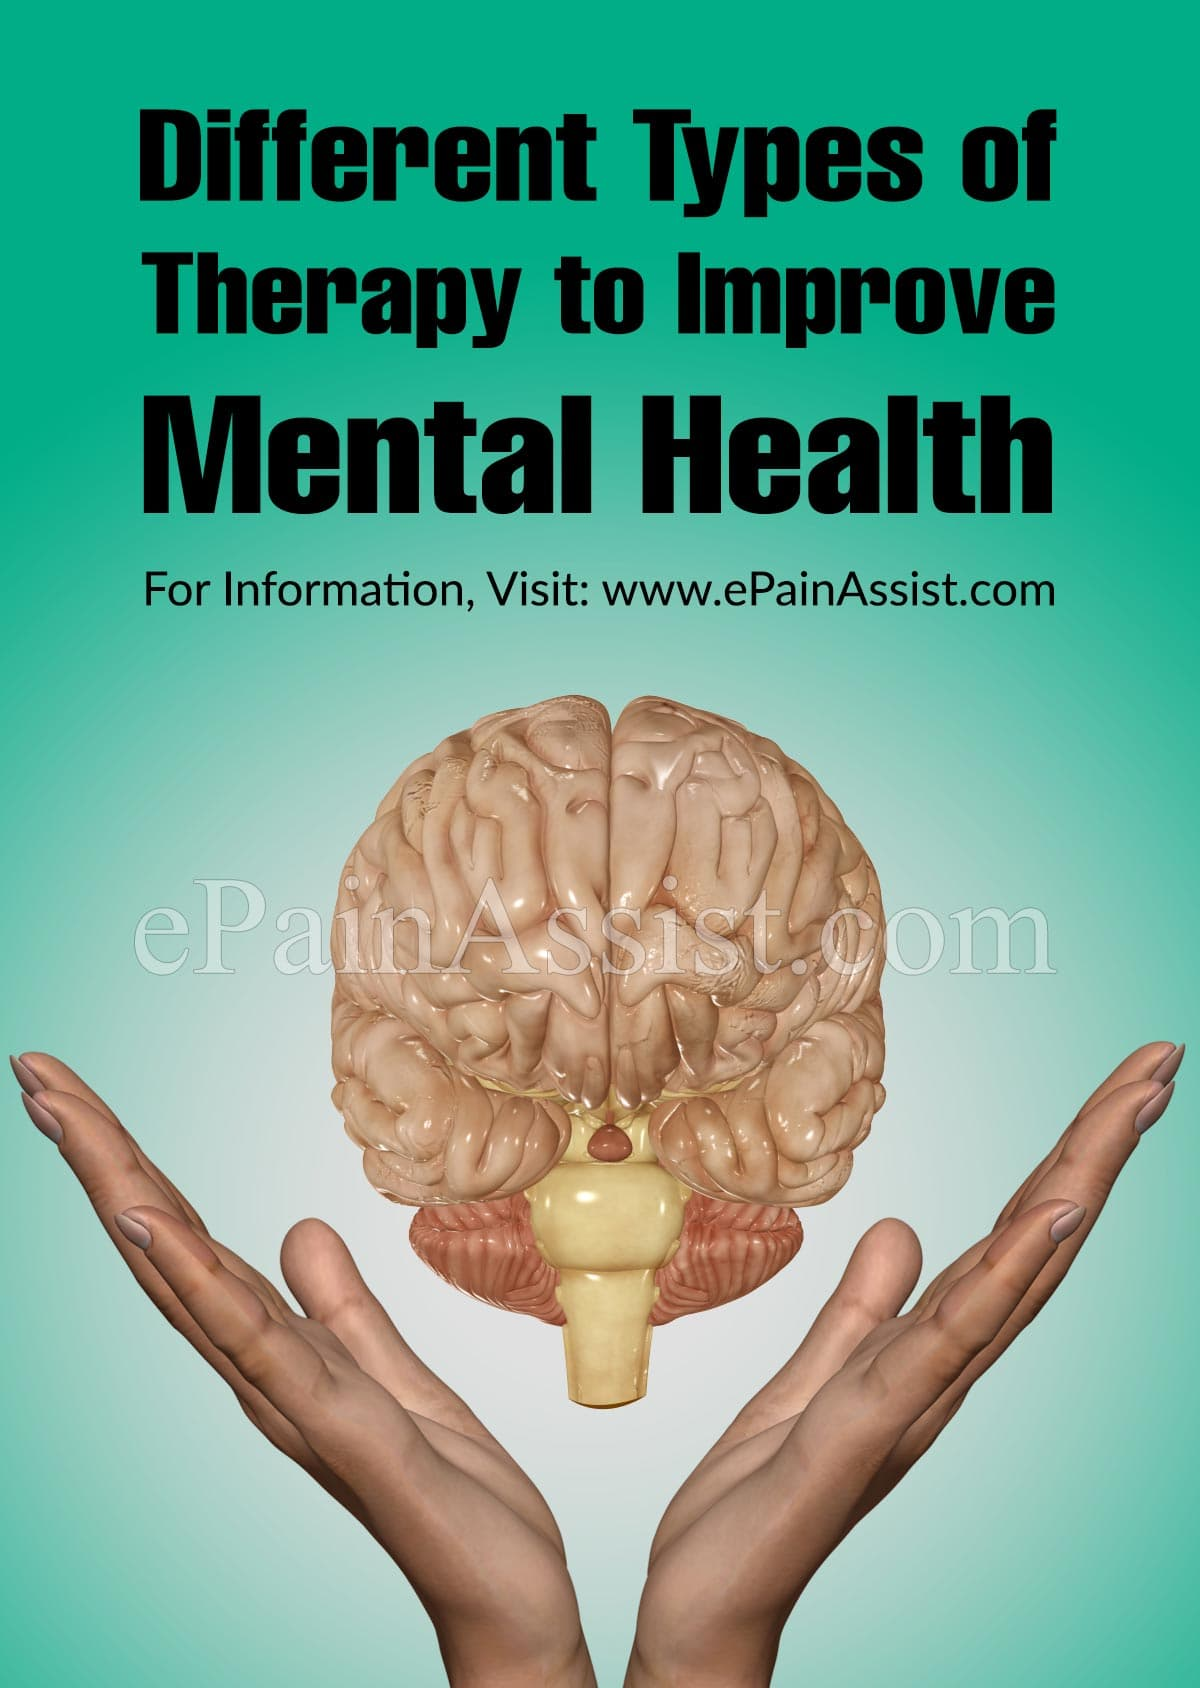 Different Types of Therapy to Improve Mental Health